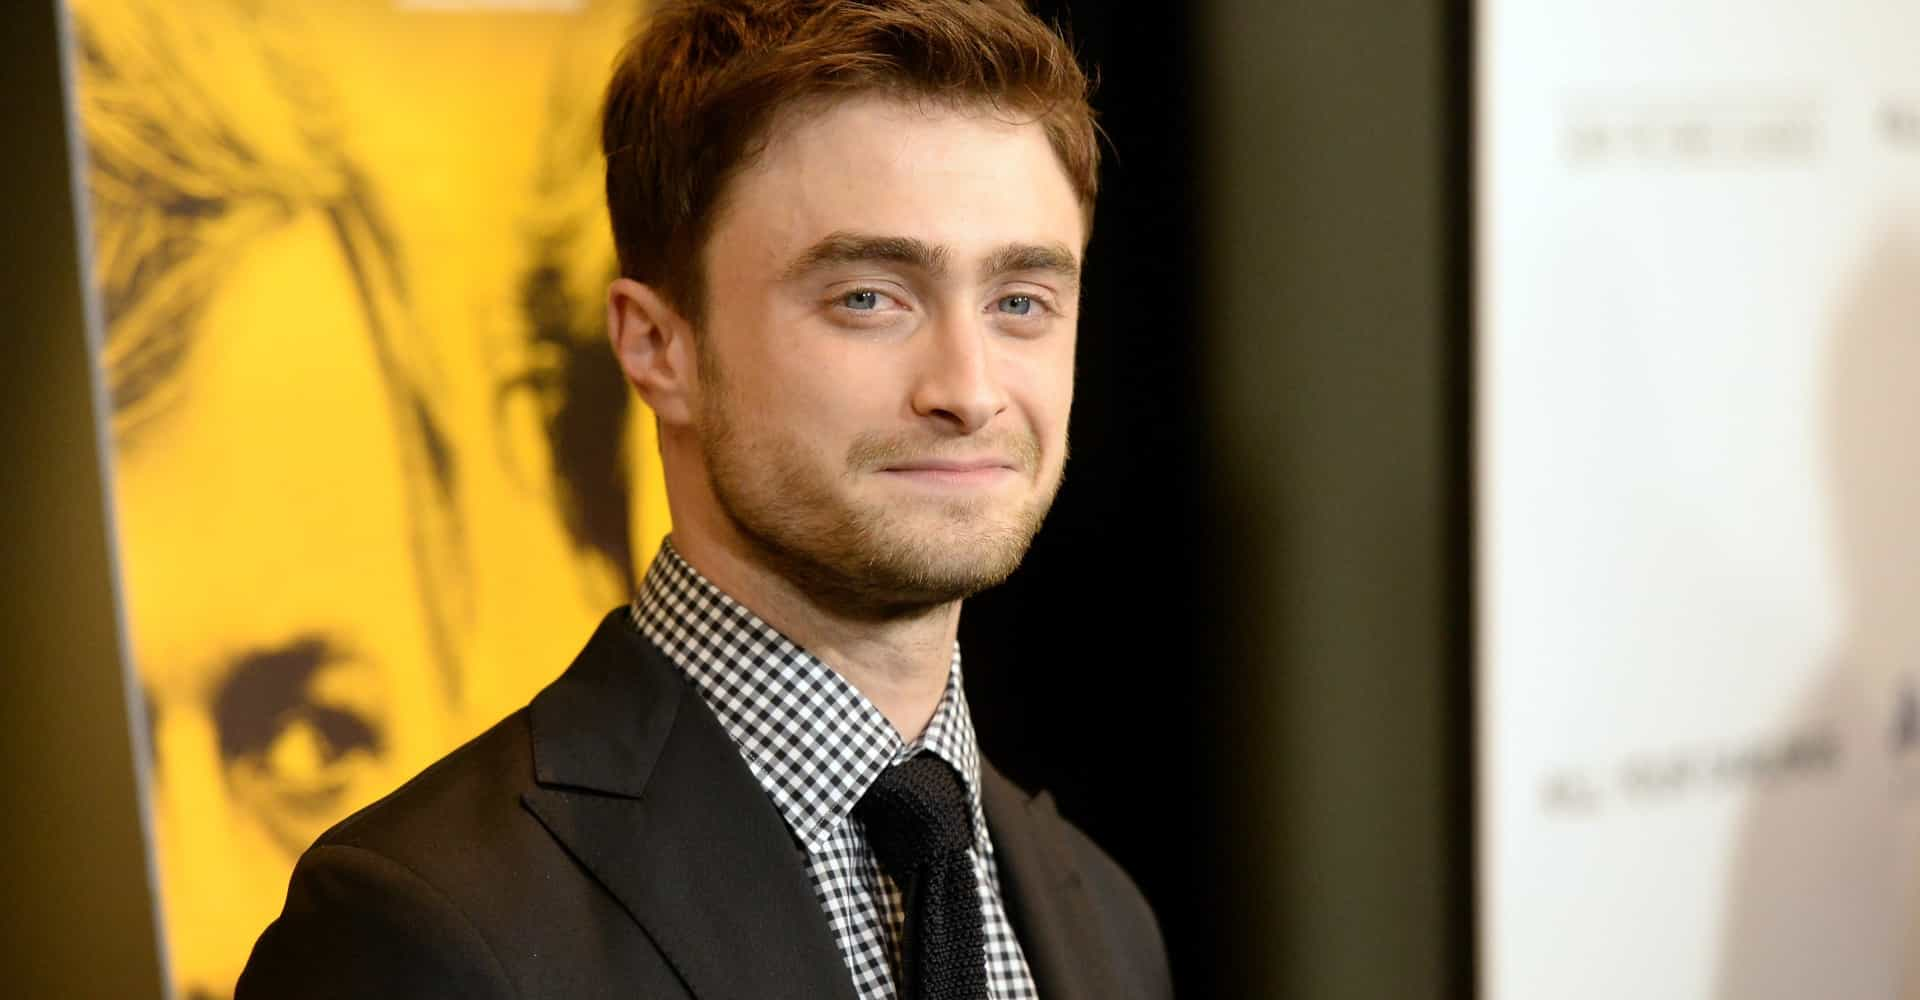 Daniel Radcliffe is refusing to watch 'Harry Potter and the Cursed Child'